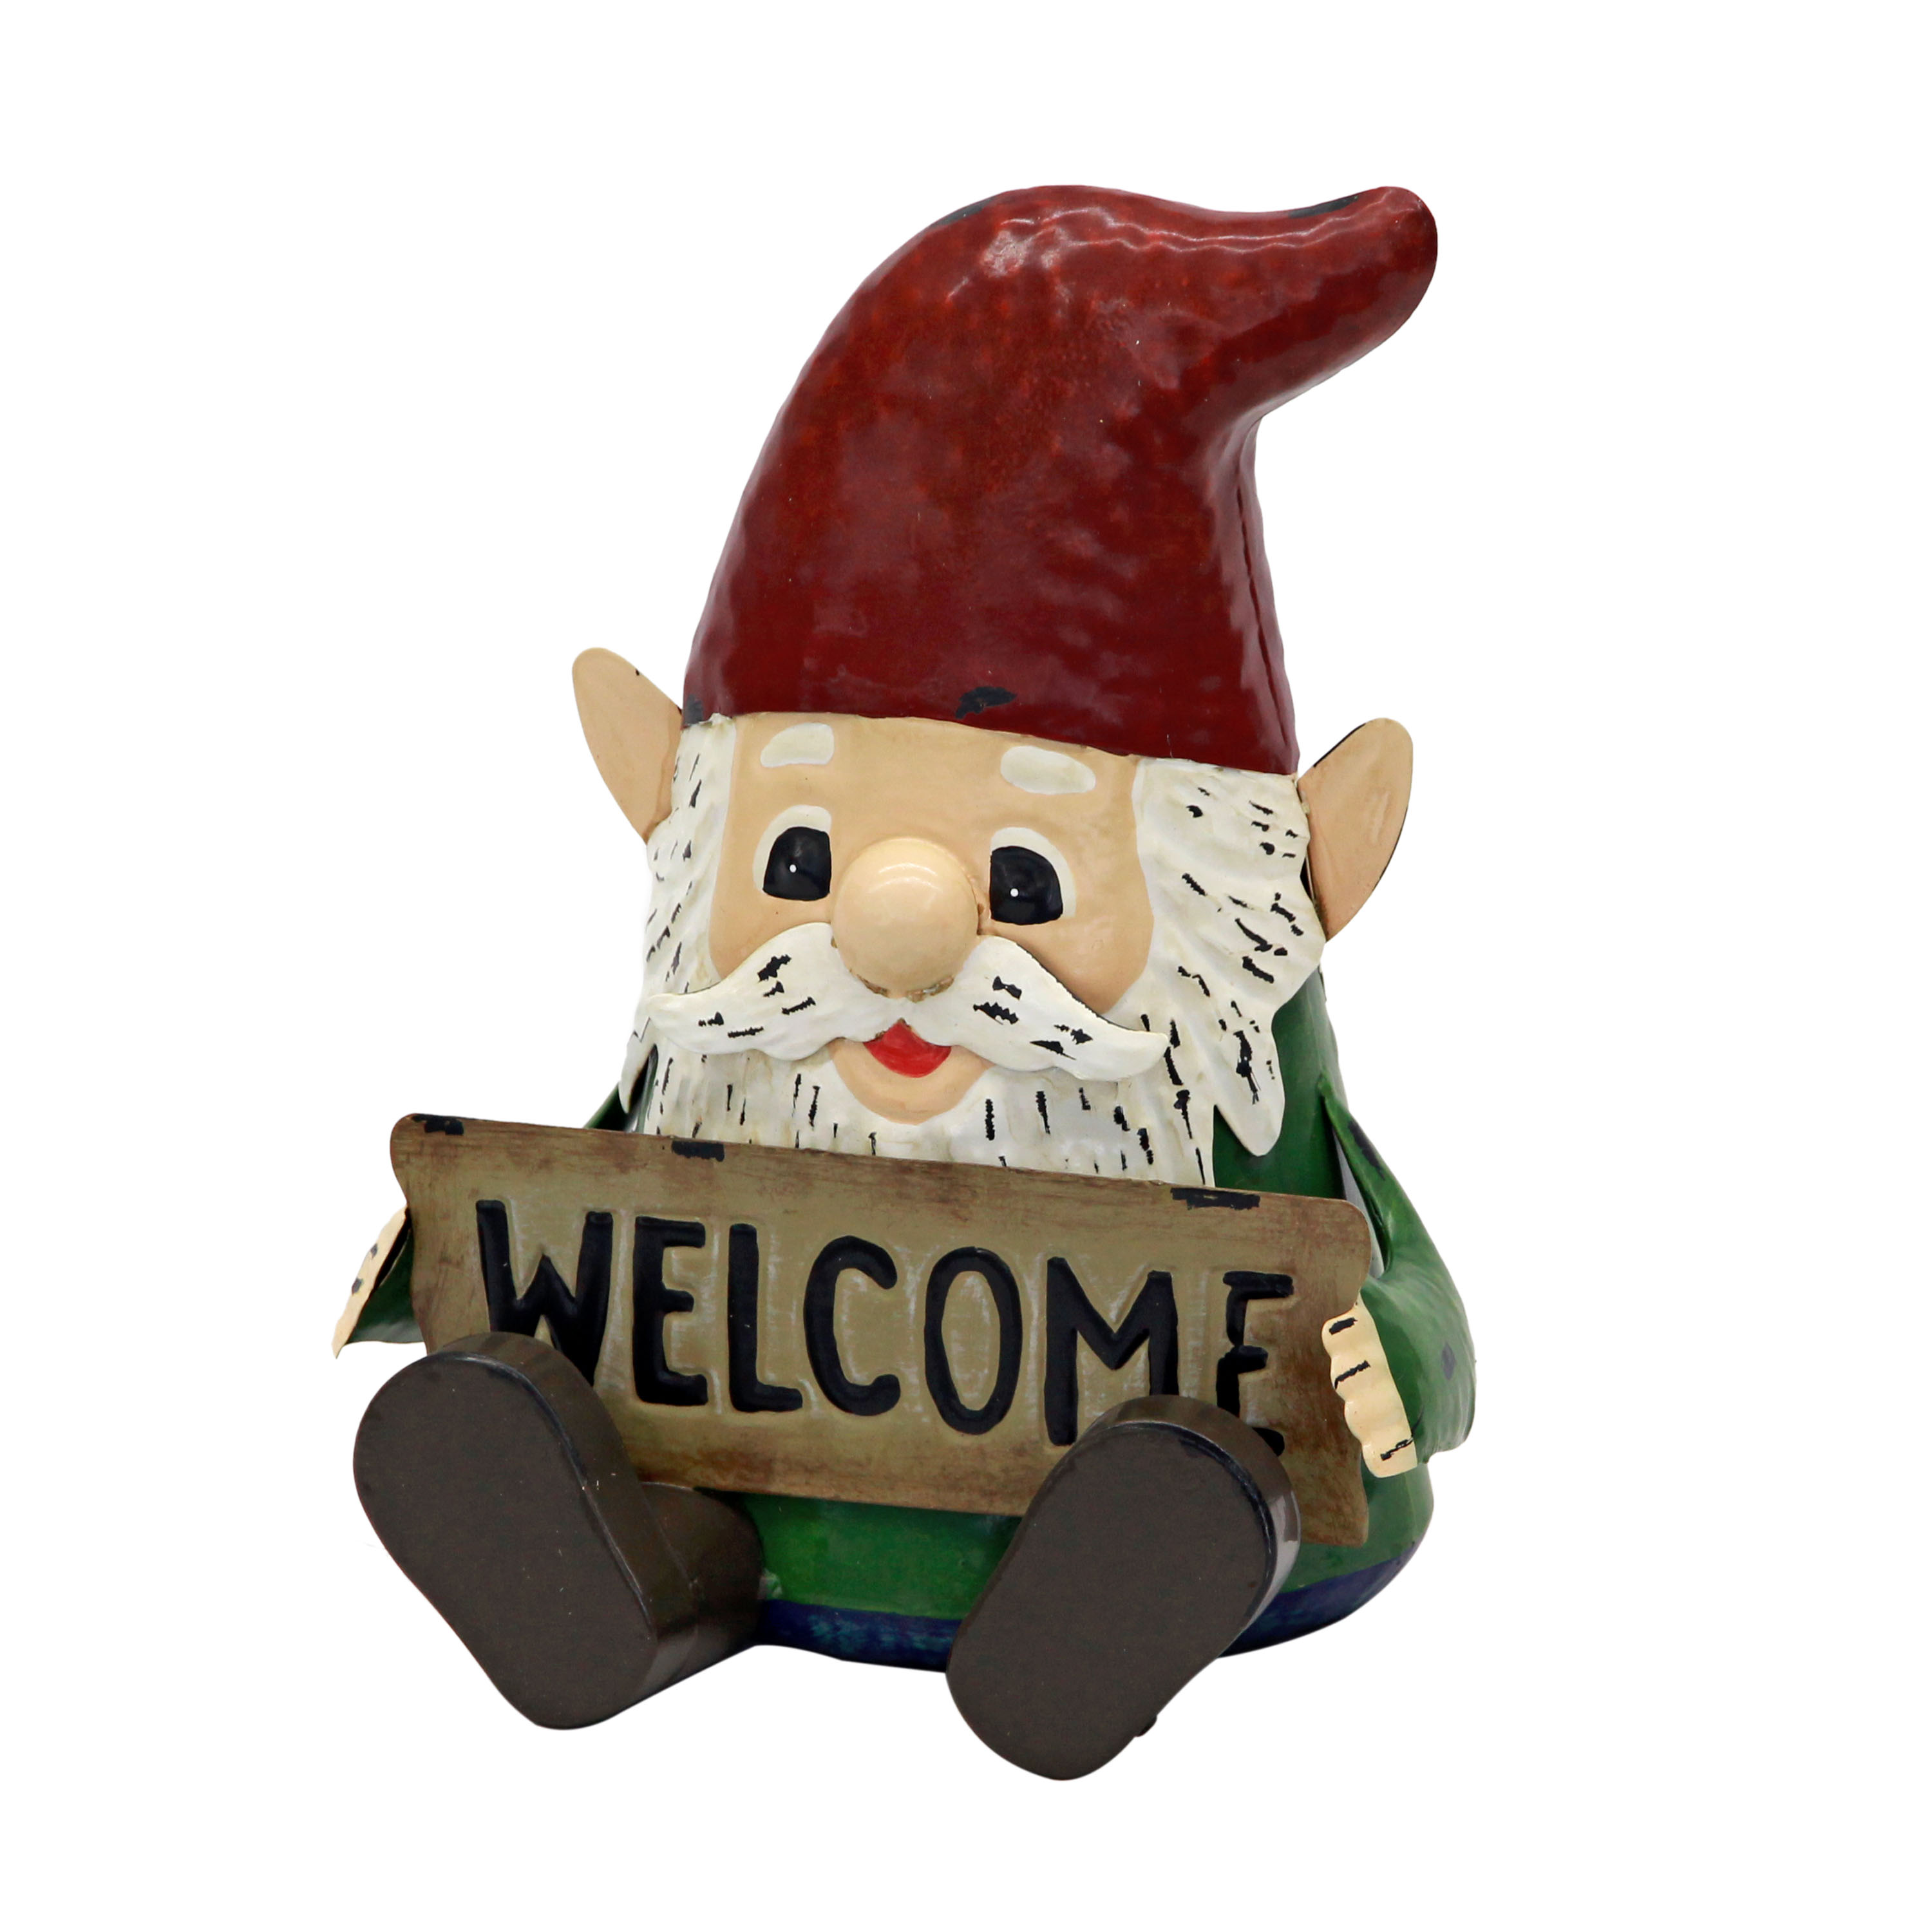 Mainstays Outdoor Metal Welcome Gnome Statuary by LEPOWER INTERNATIONAL CO LTD